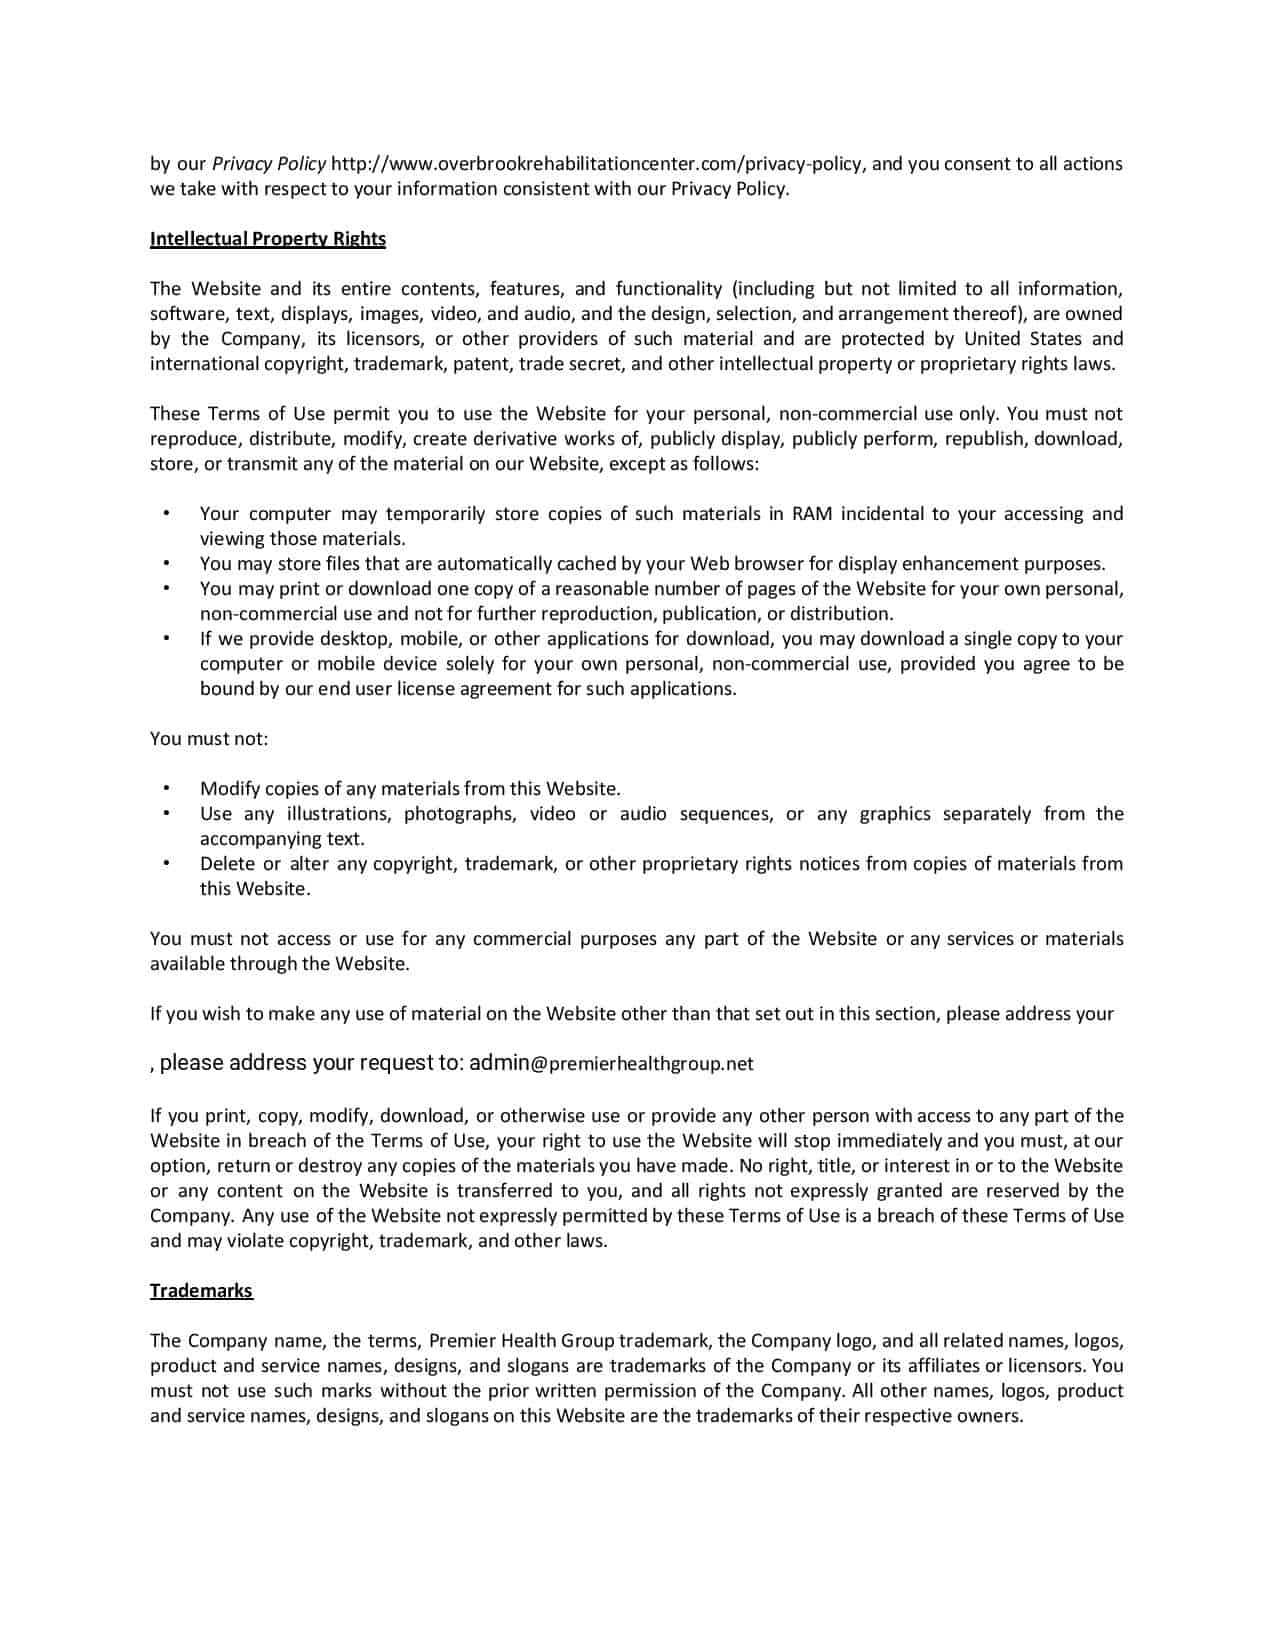 overbrookrehabilitationcenter Terms of Use-page-002